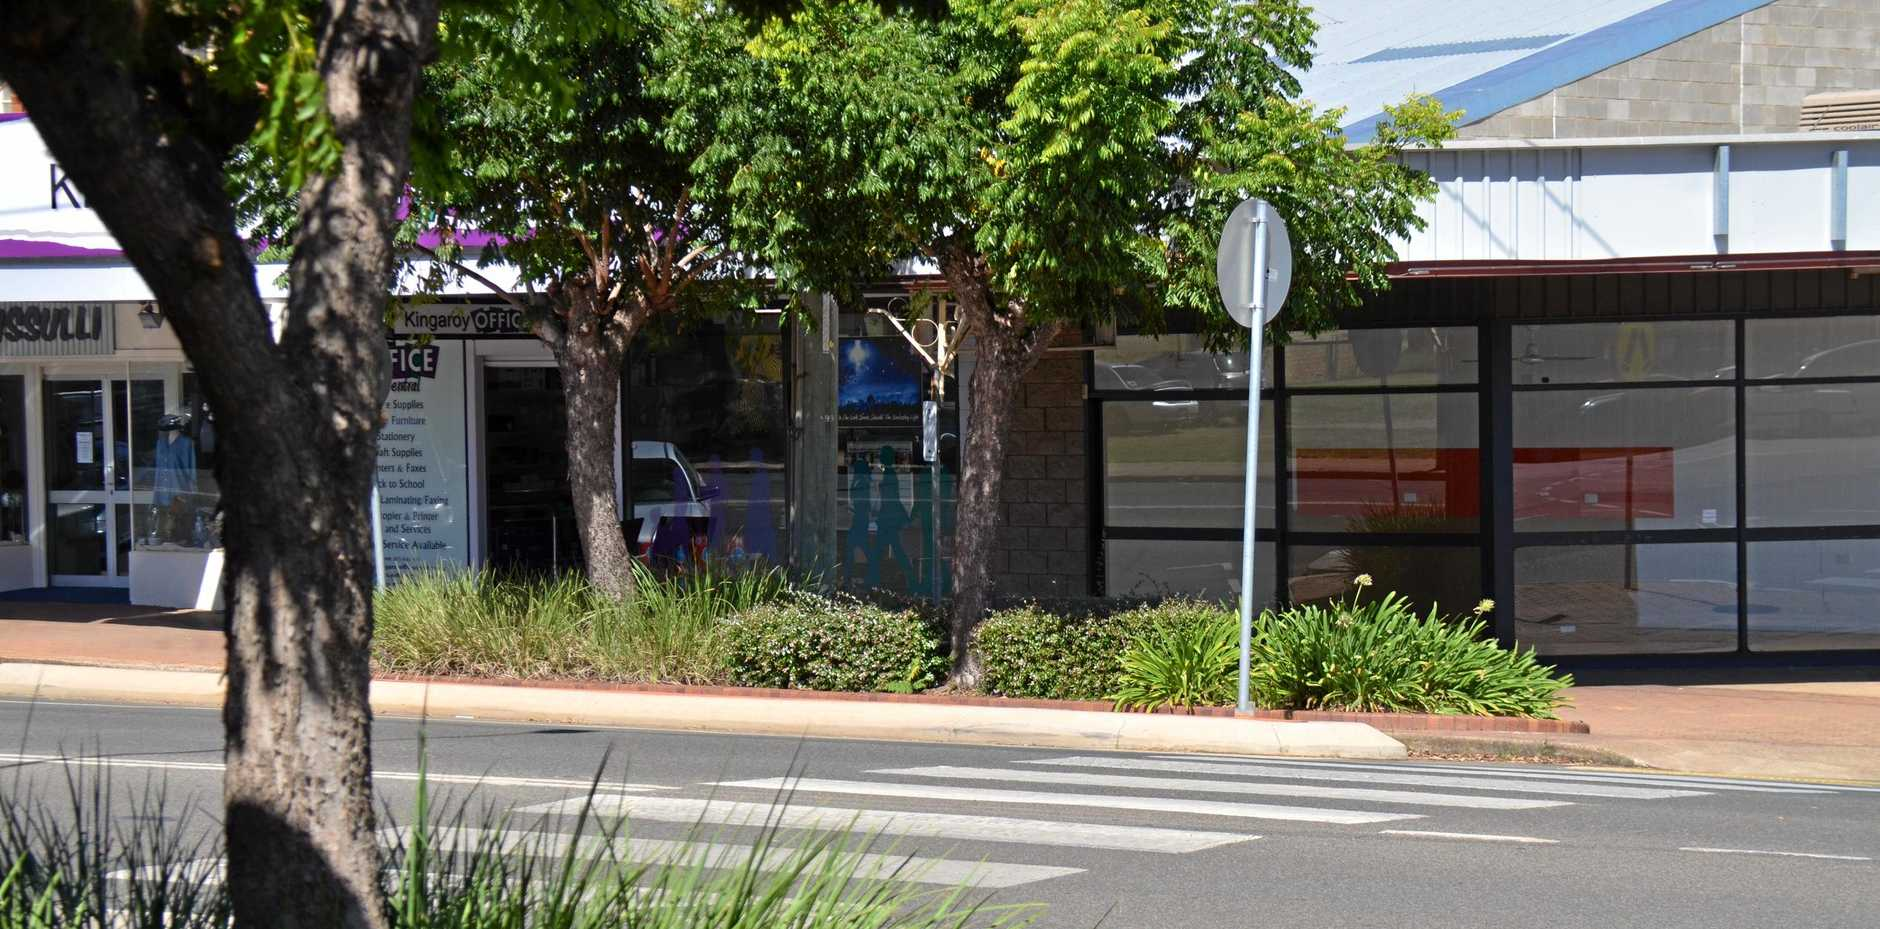 CHANGES AHEAD: South Burnett Council will be doing a full review of Haly St.